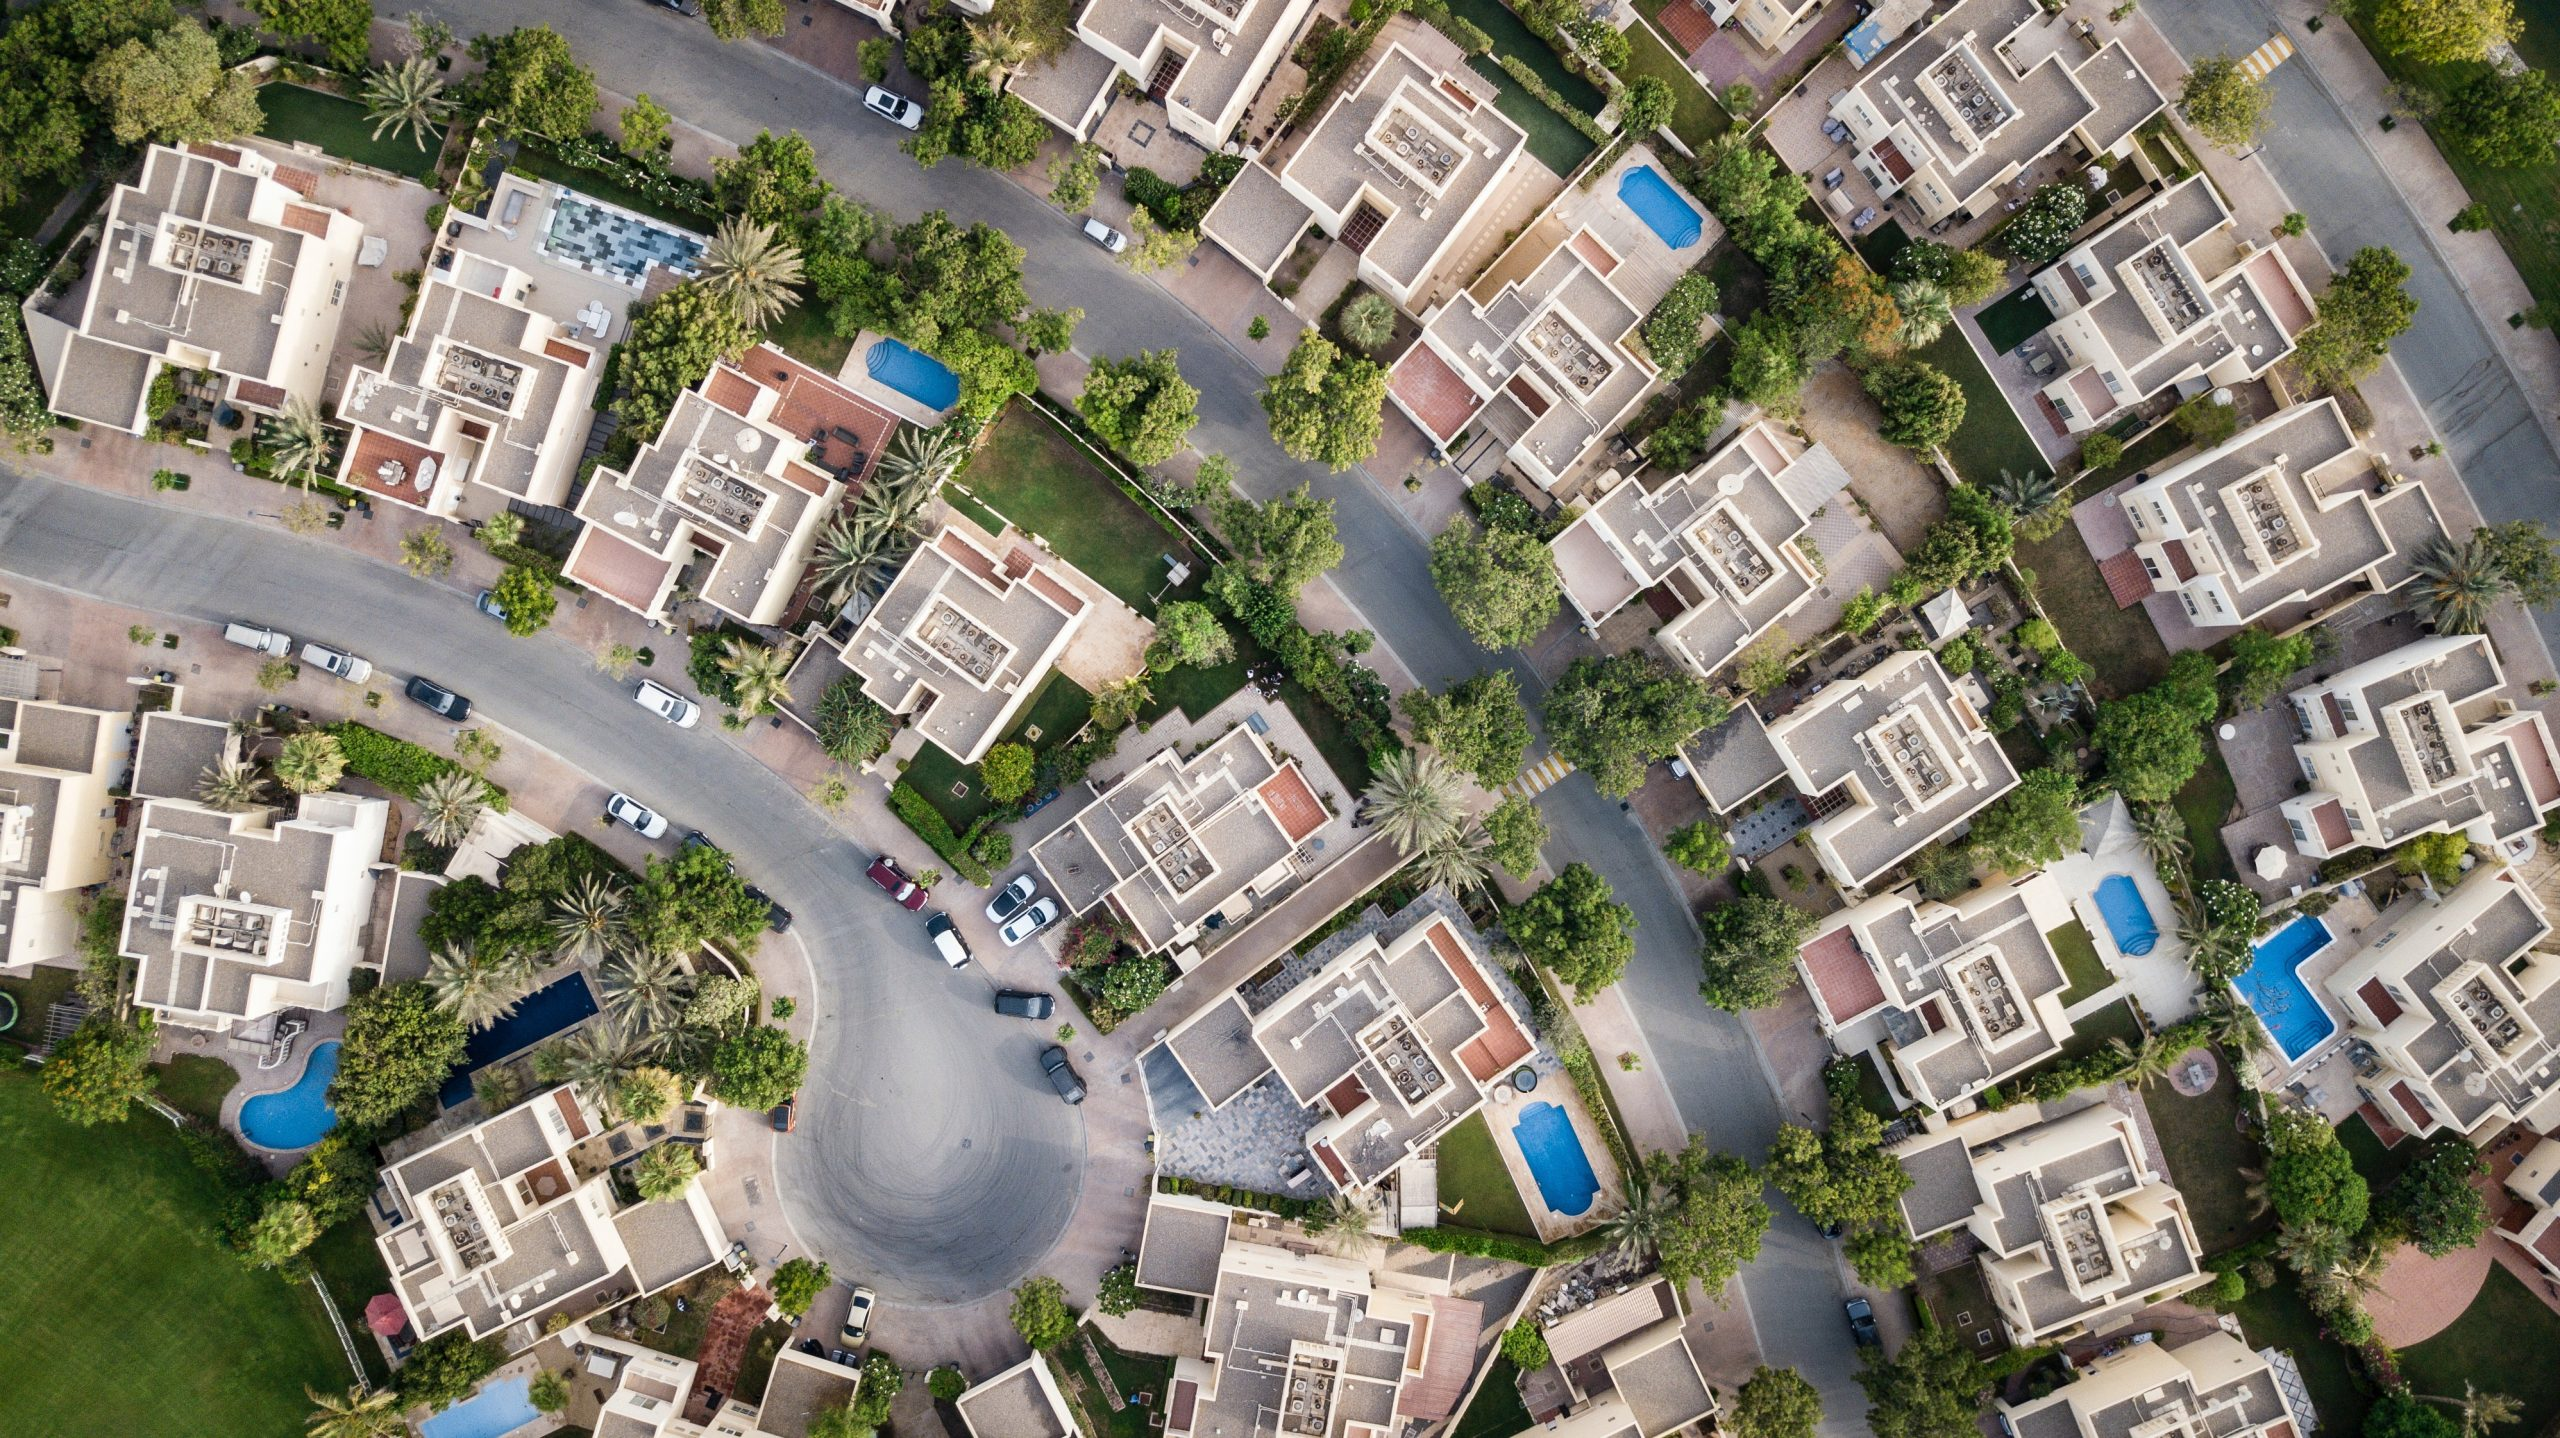 UAE Property Market Looks Promising as Sales for Villas Increase